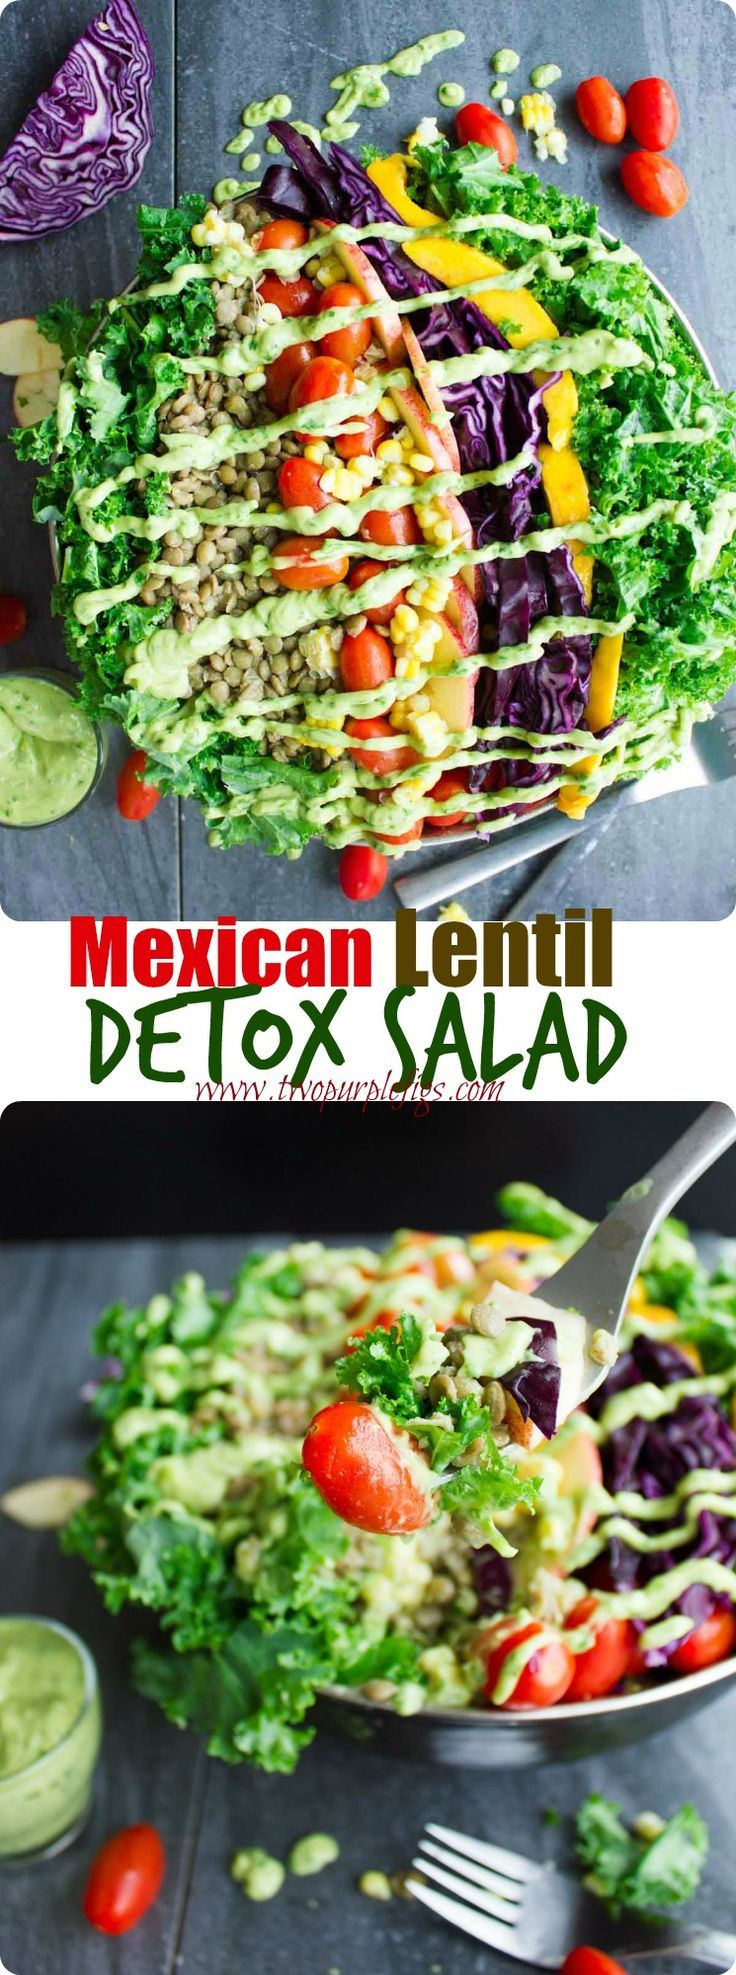 Mexican Style Lentil Detox Salad. The perfect way to cook lentils and make perfect detox salad with a Mexican twist--drizzled with an AMAZIG guacamole dressing! Vegan and Gluten free. www.twopurplefigs.com